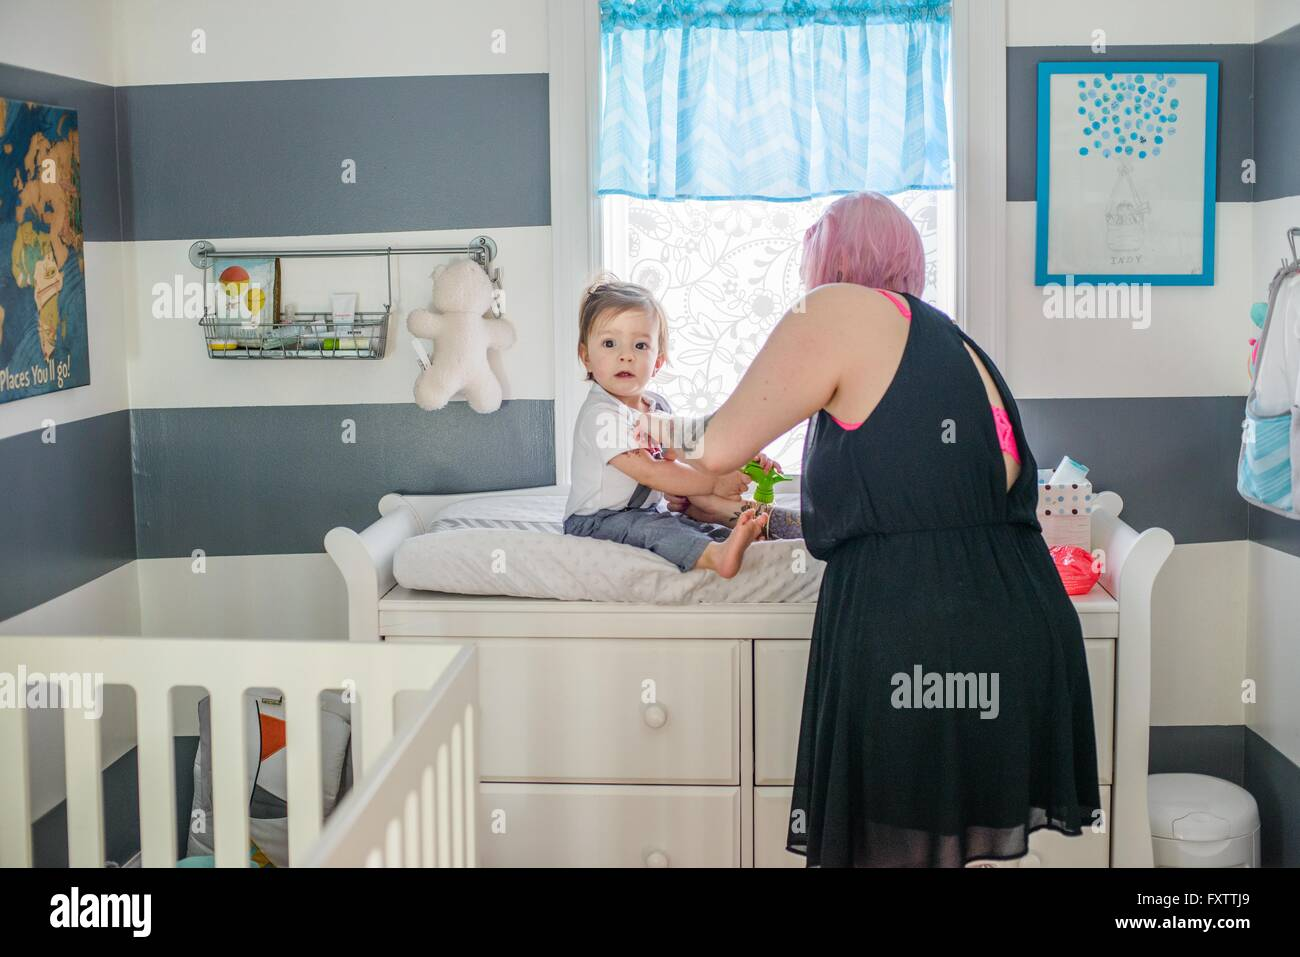 Mother getting baby son dressed on nursery day bed - Stock Image